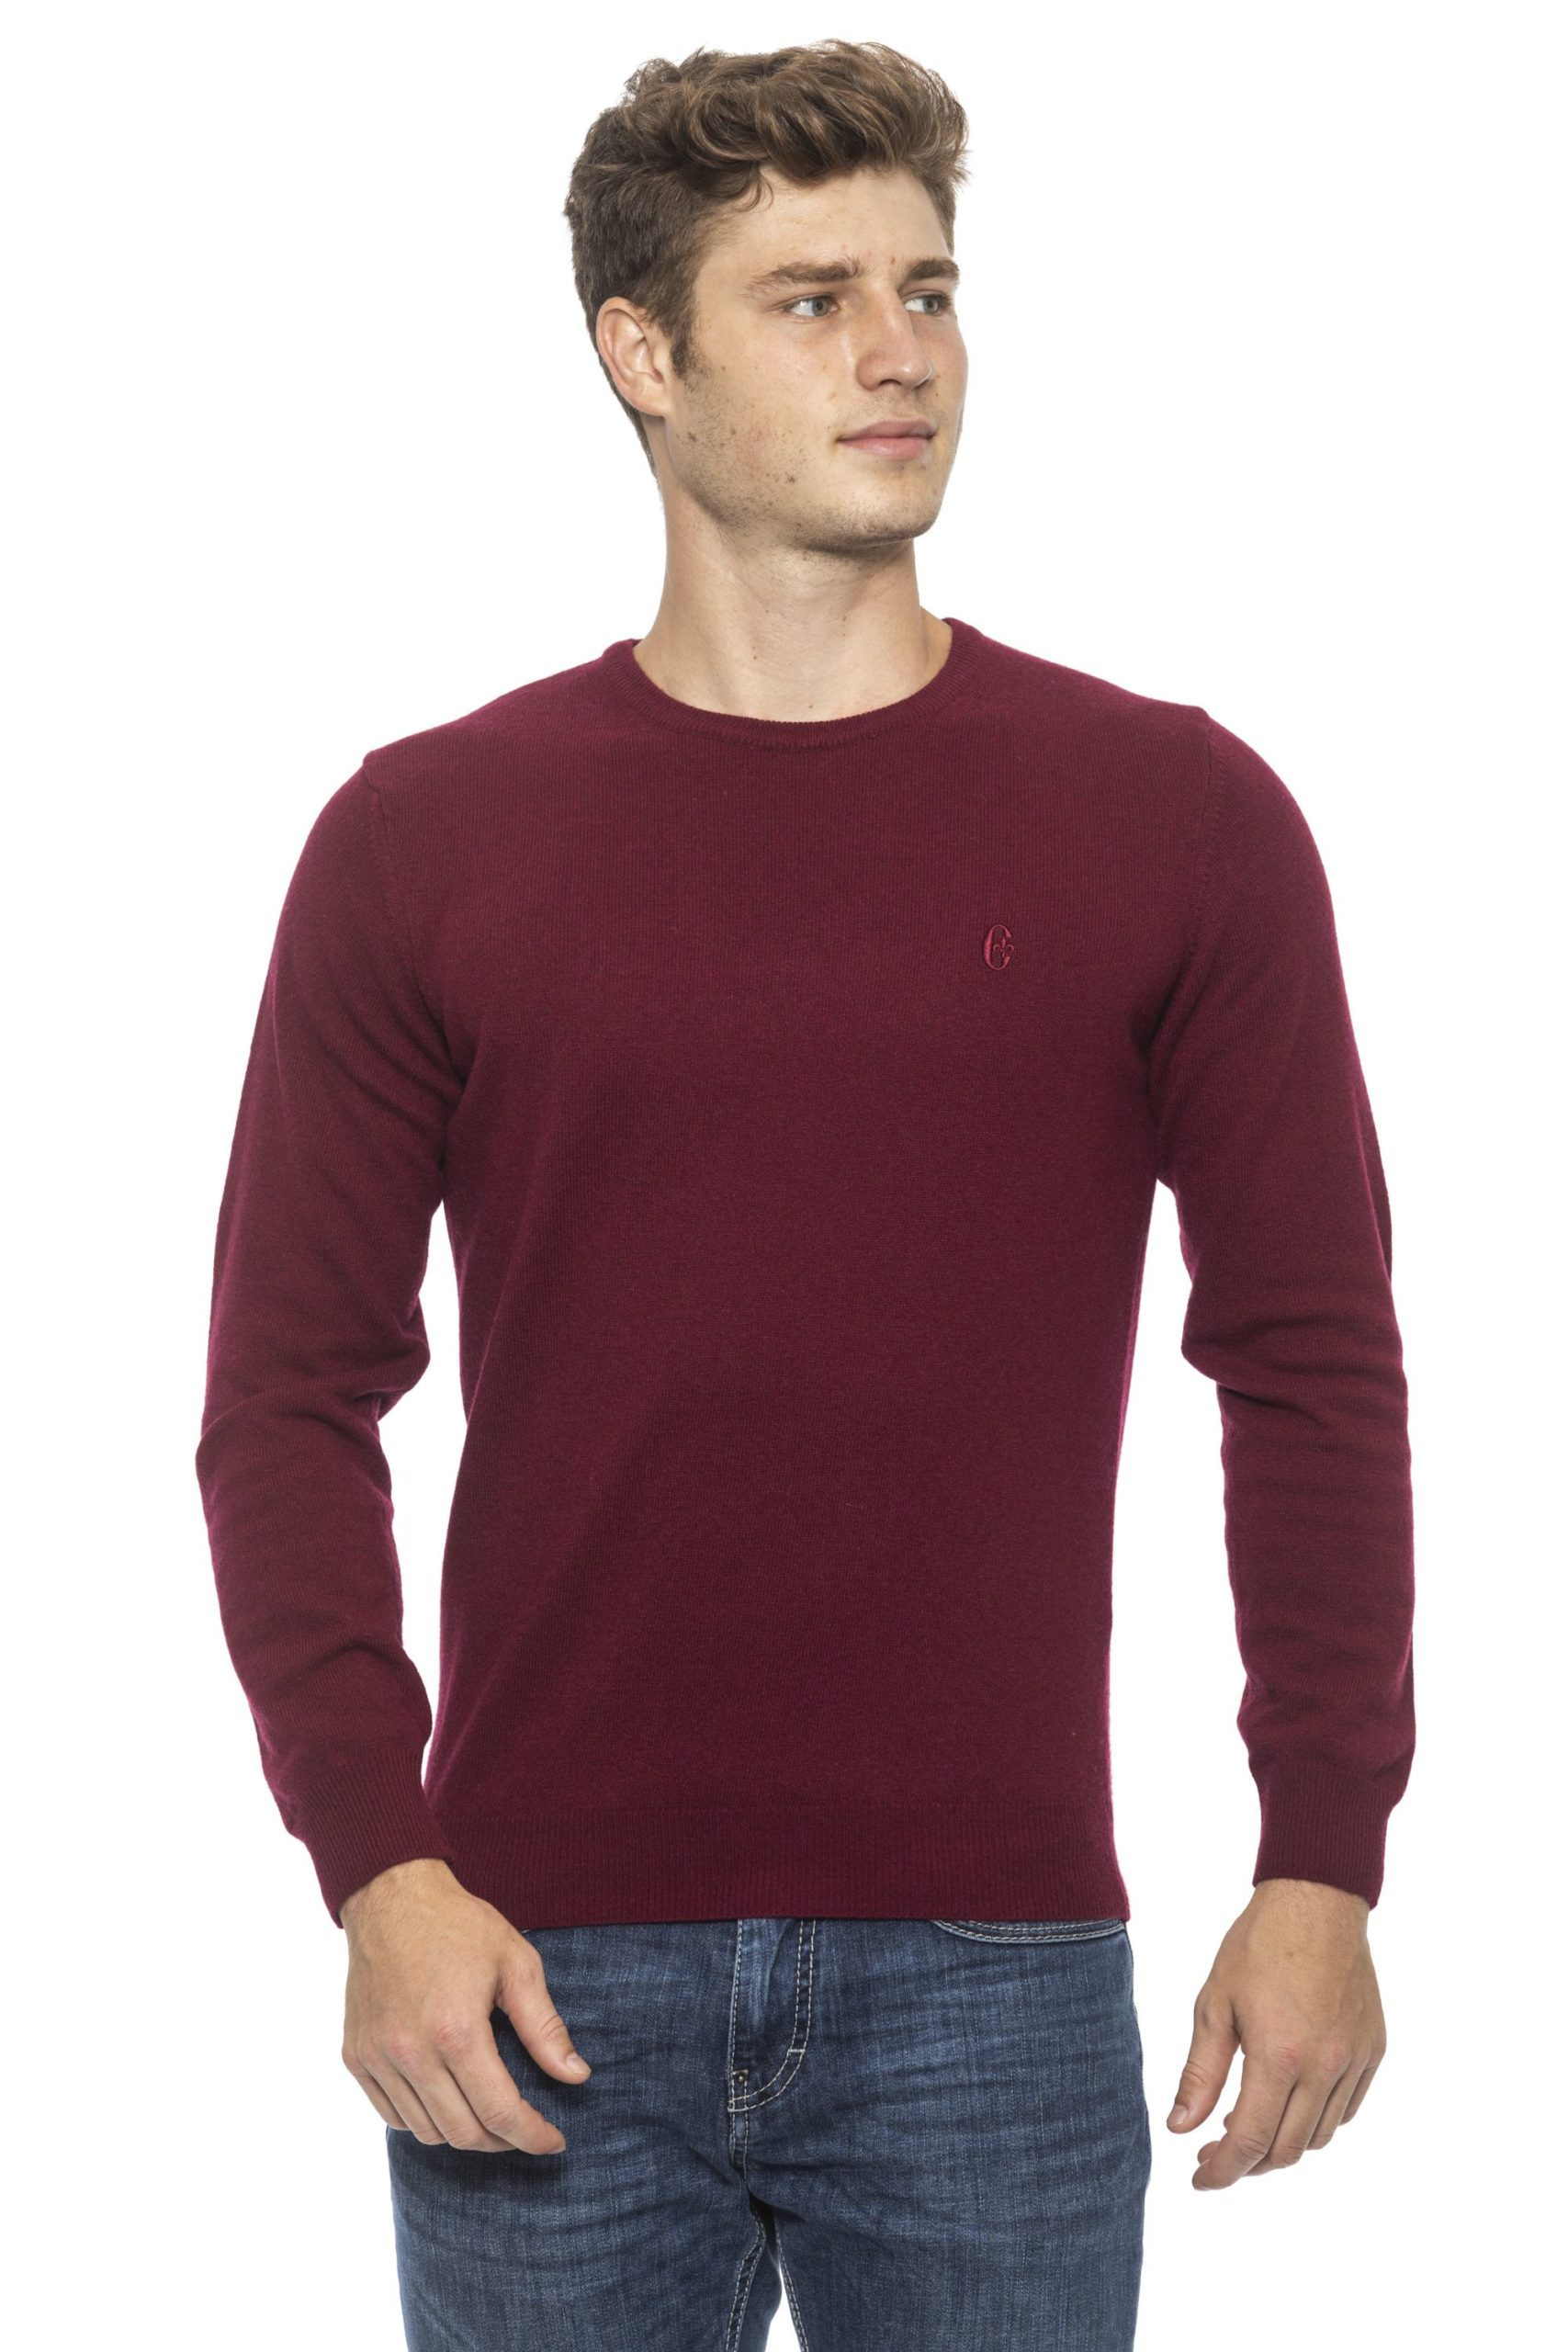 Conte of Florence Men's Sweater Burgundy CO1272729 - L